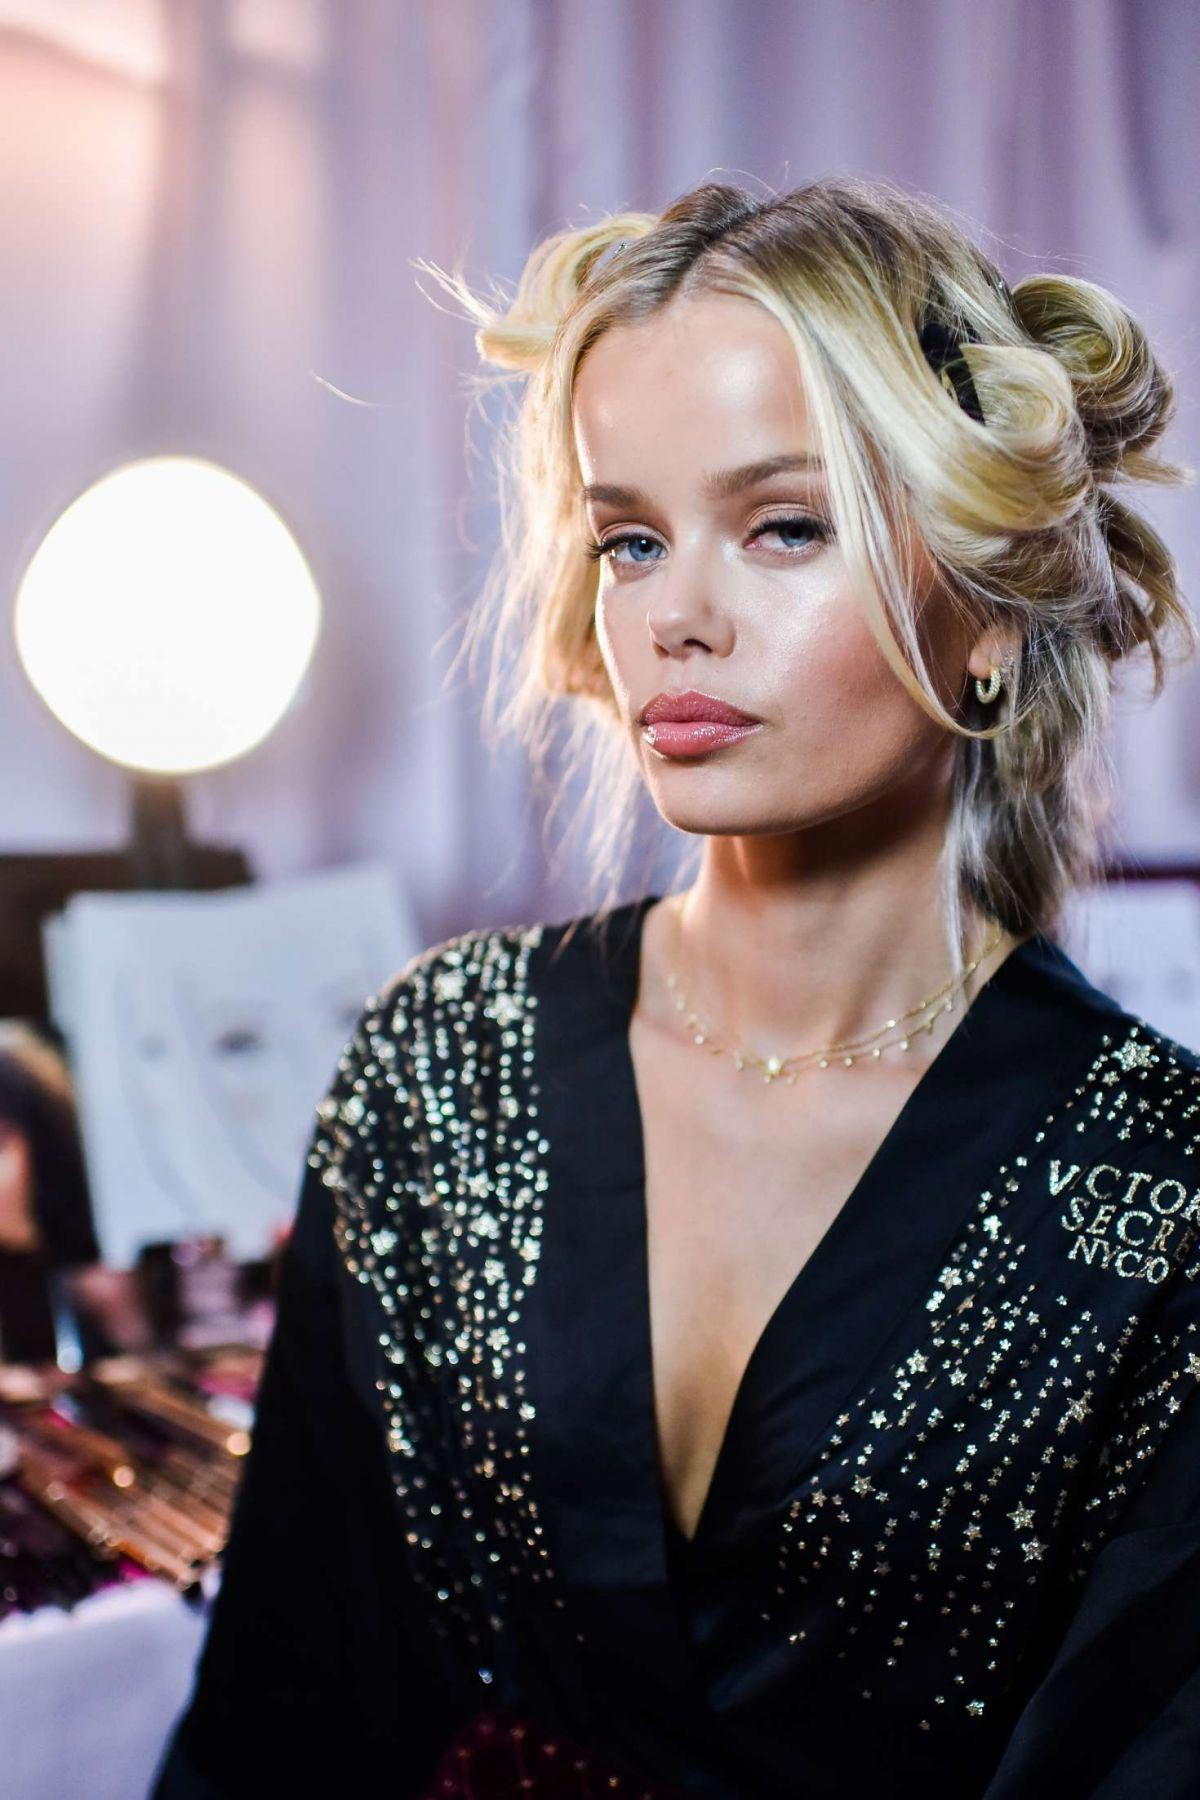 2019 Frida Aasen nudes (78 foto and video), Ass, Hot, Instagram, braless 2006